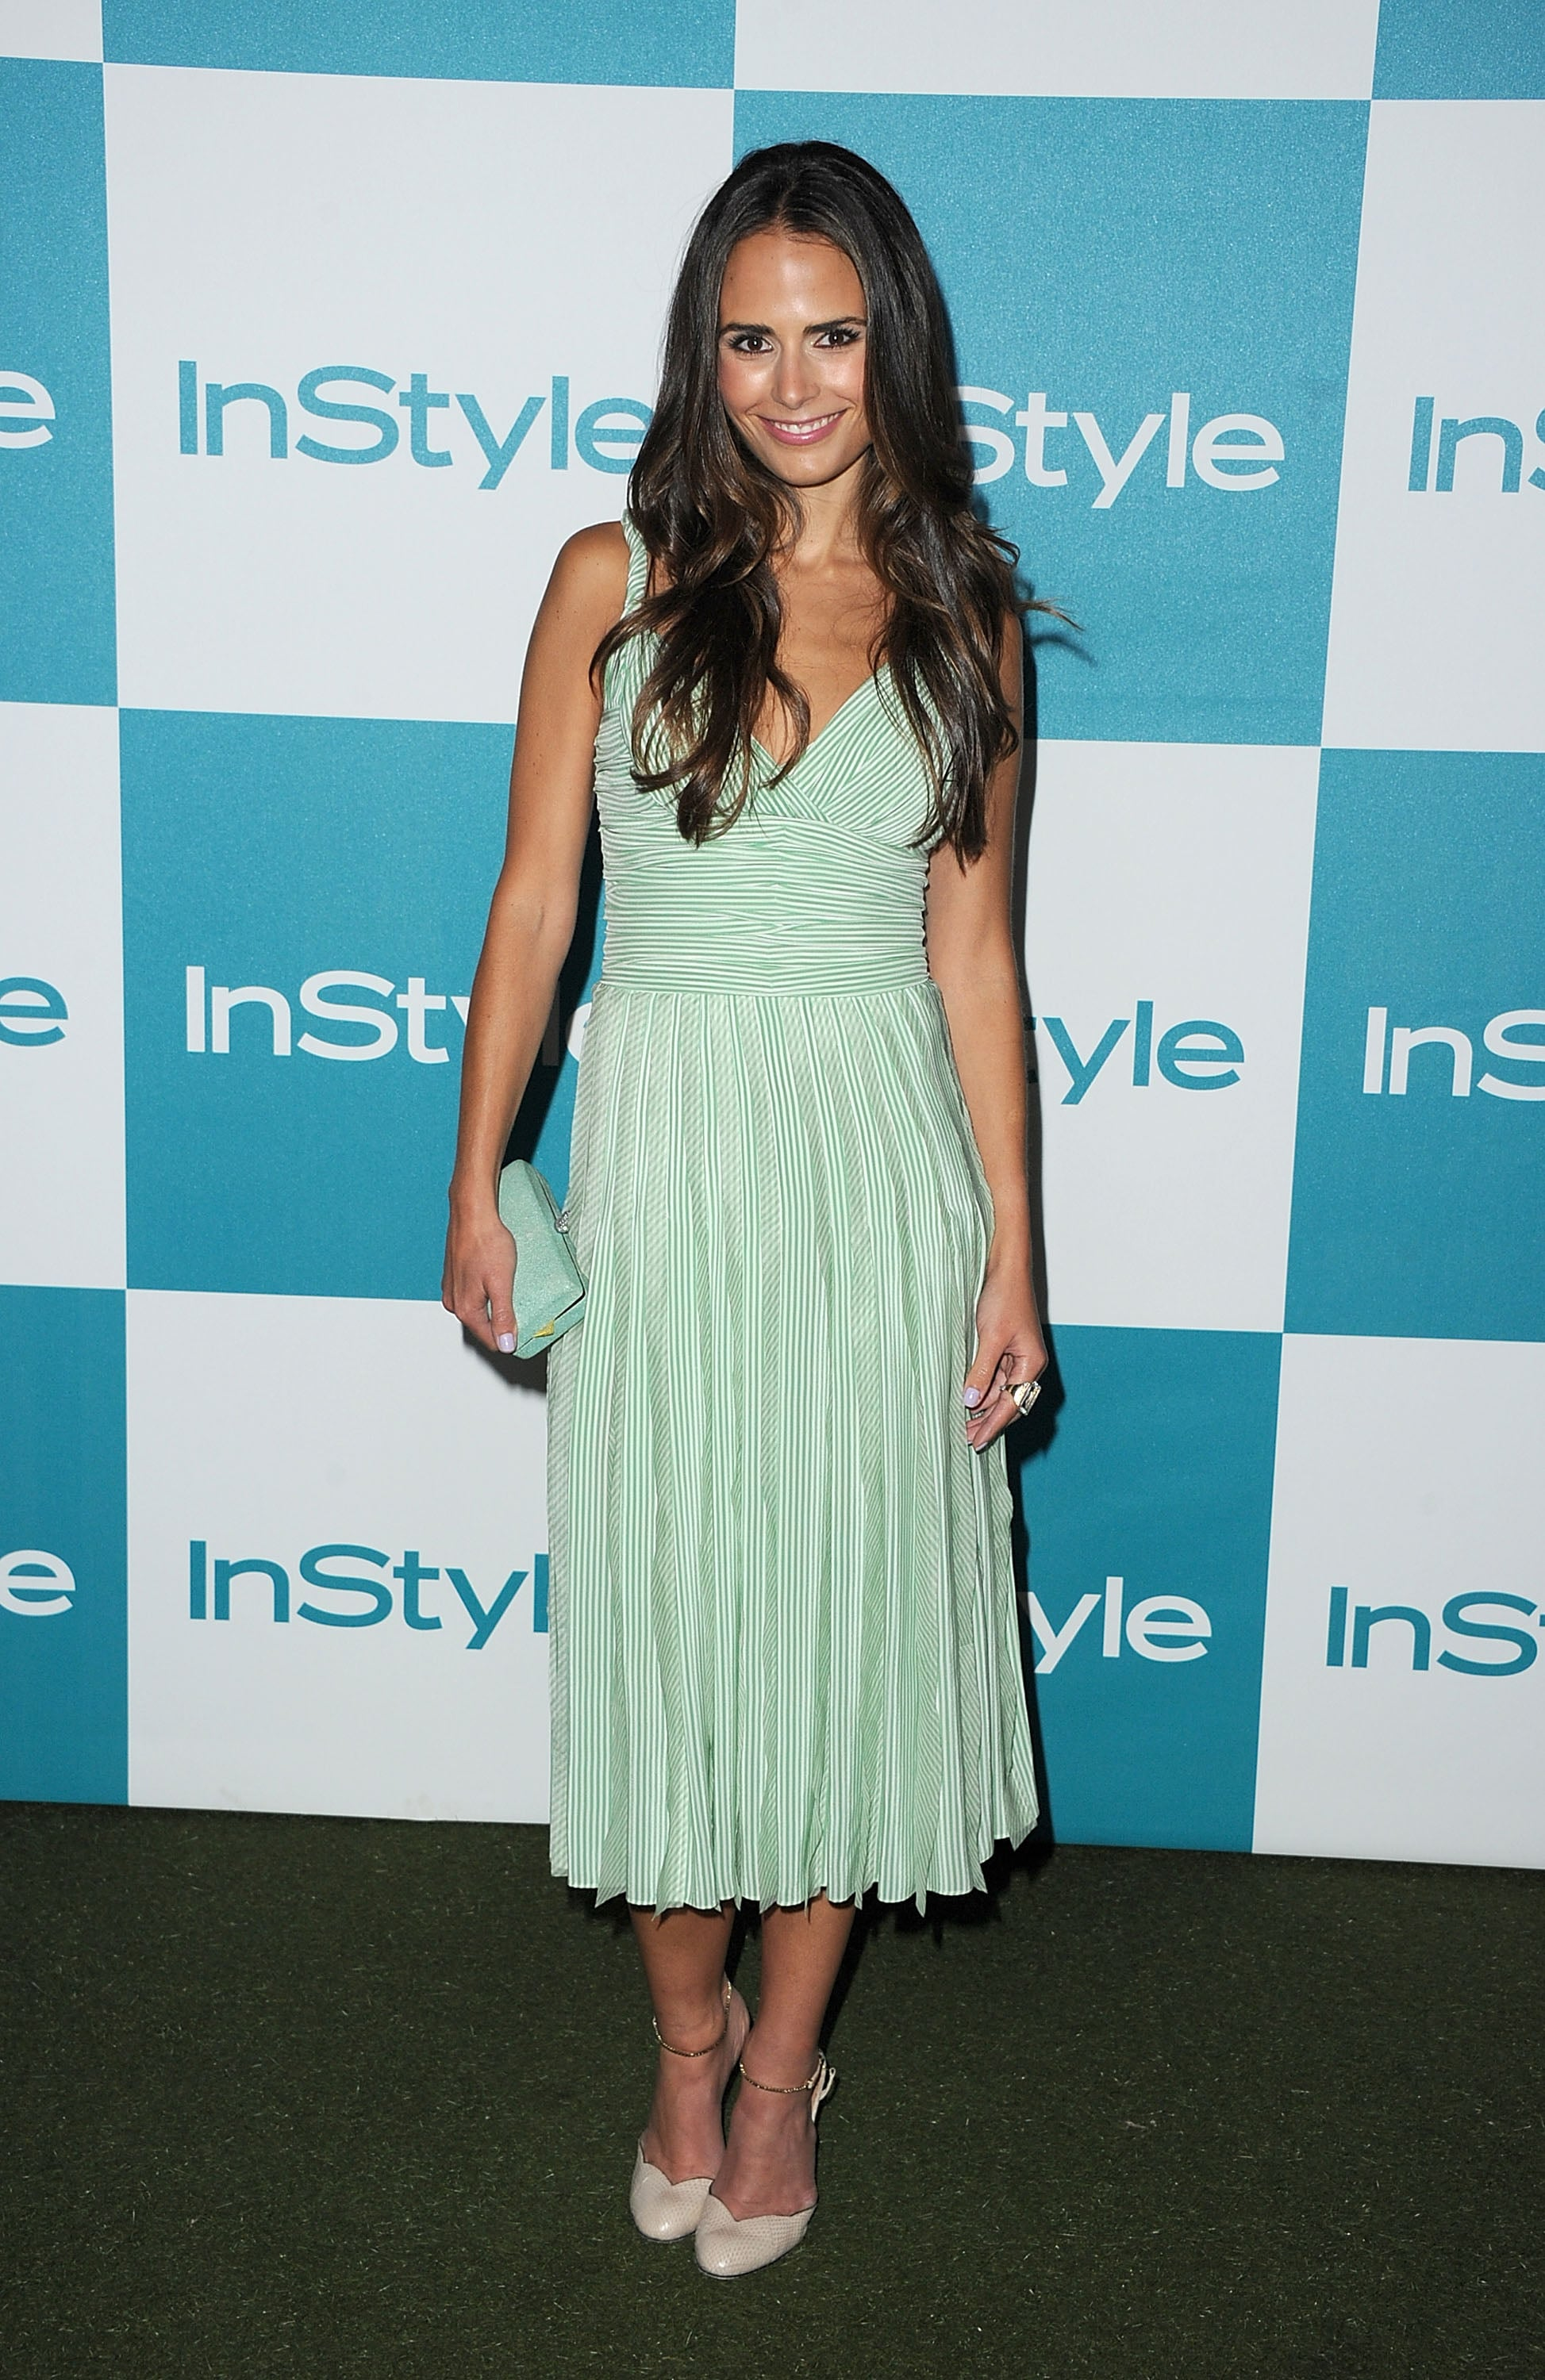 Jordana Brewster at the 10th annual InStyle Summer soiree.